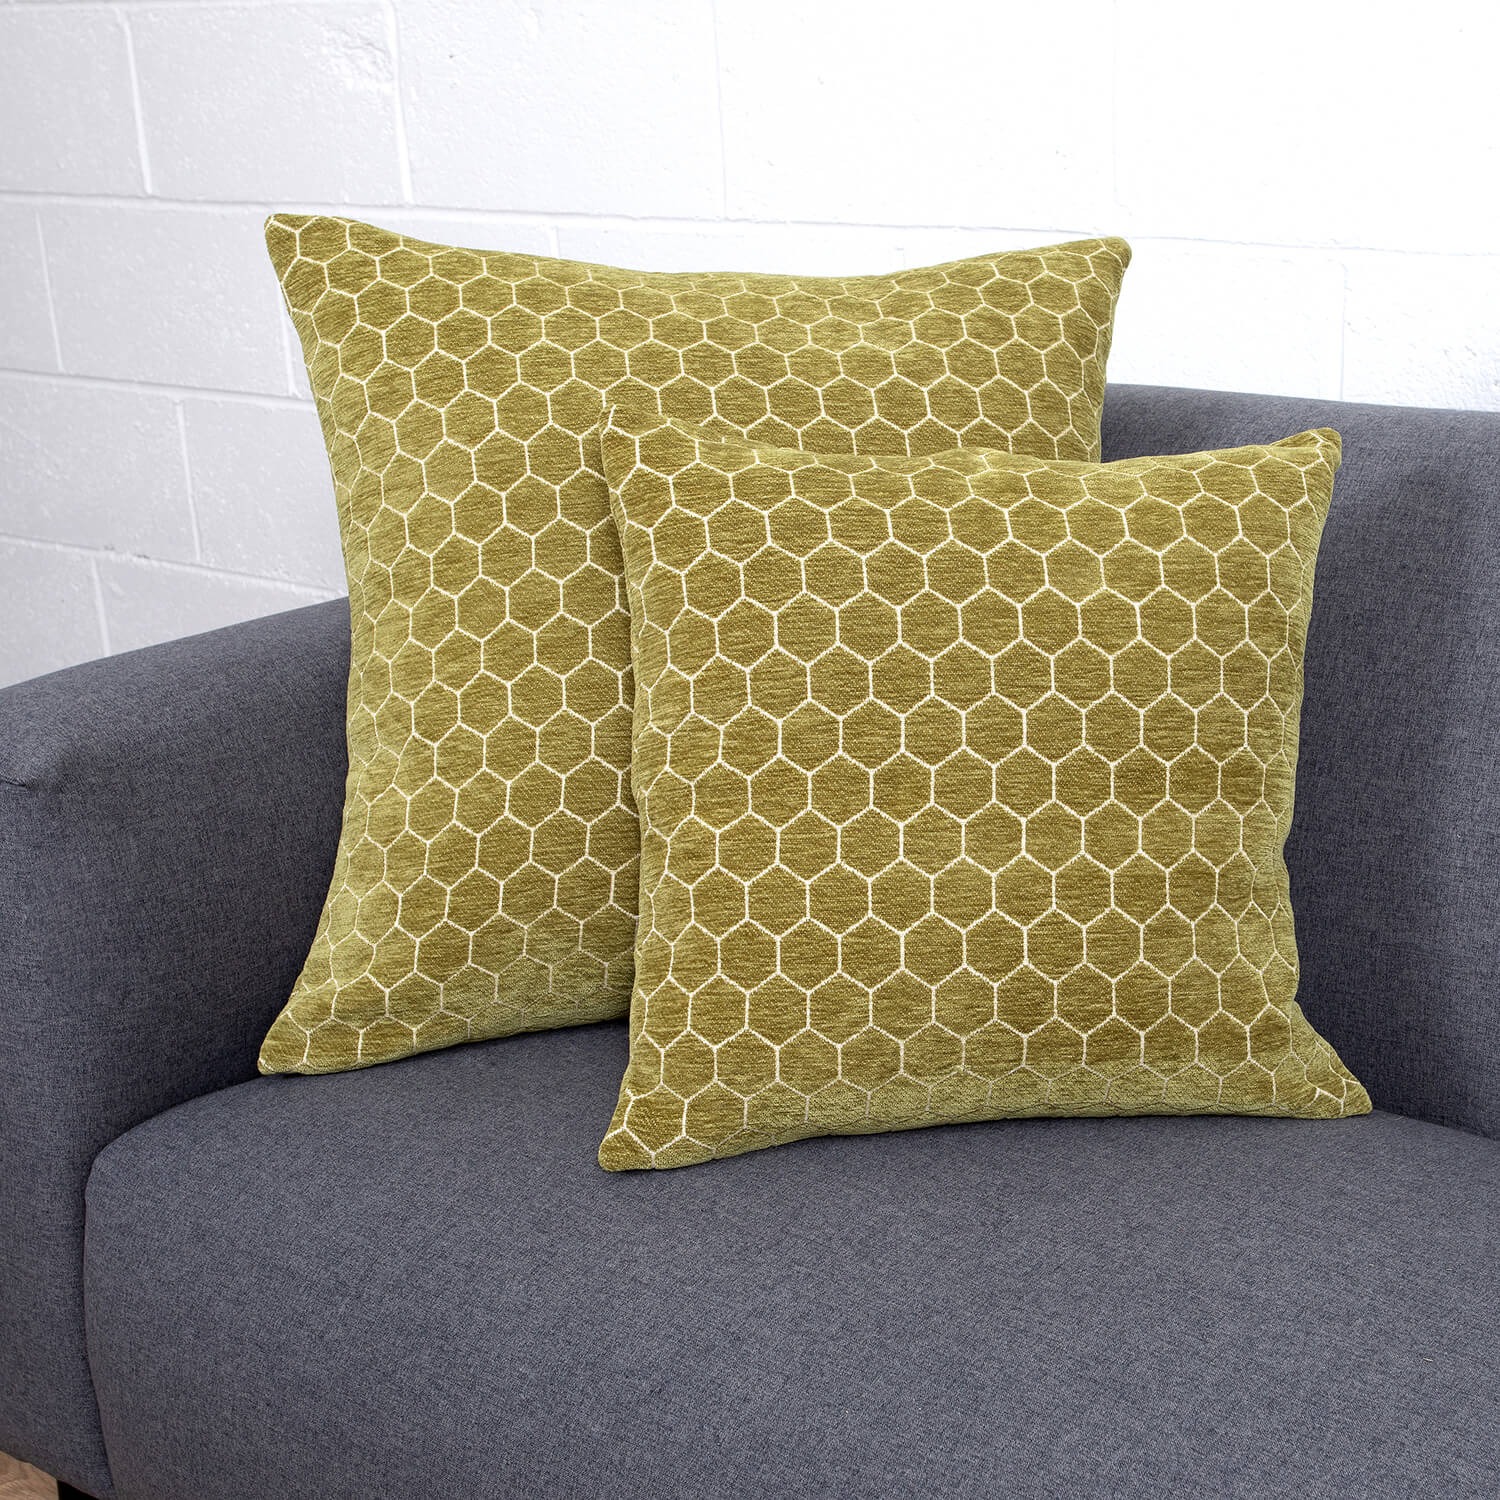 Honeycomb Cushion 45x45cm Olive Green Home Store More